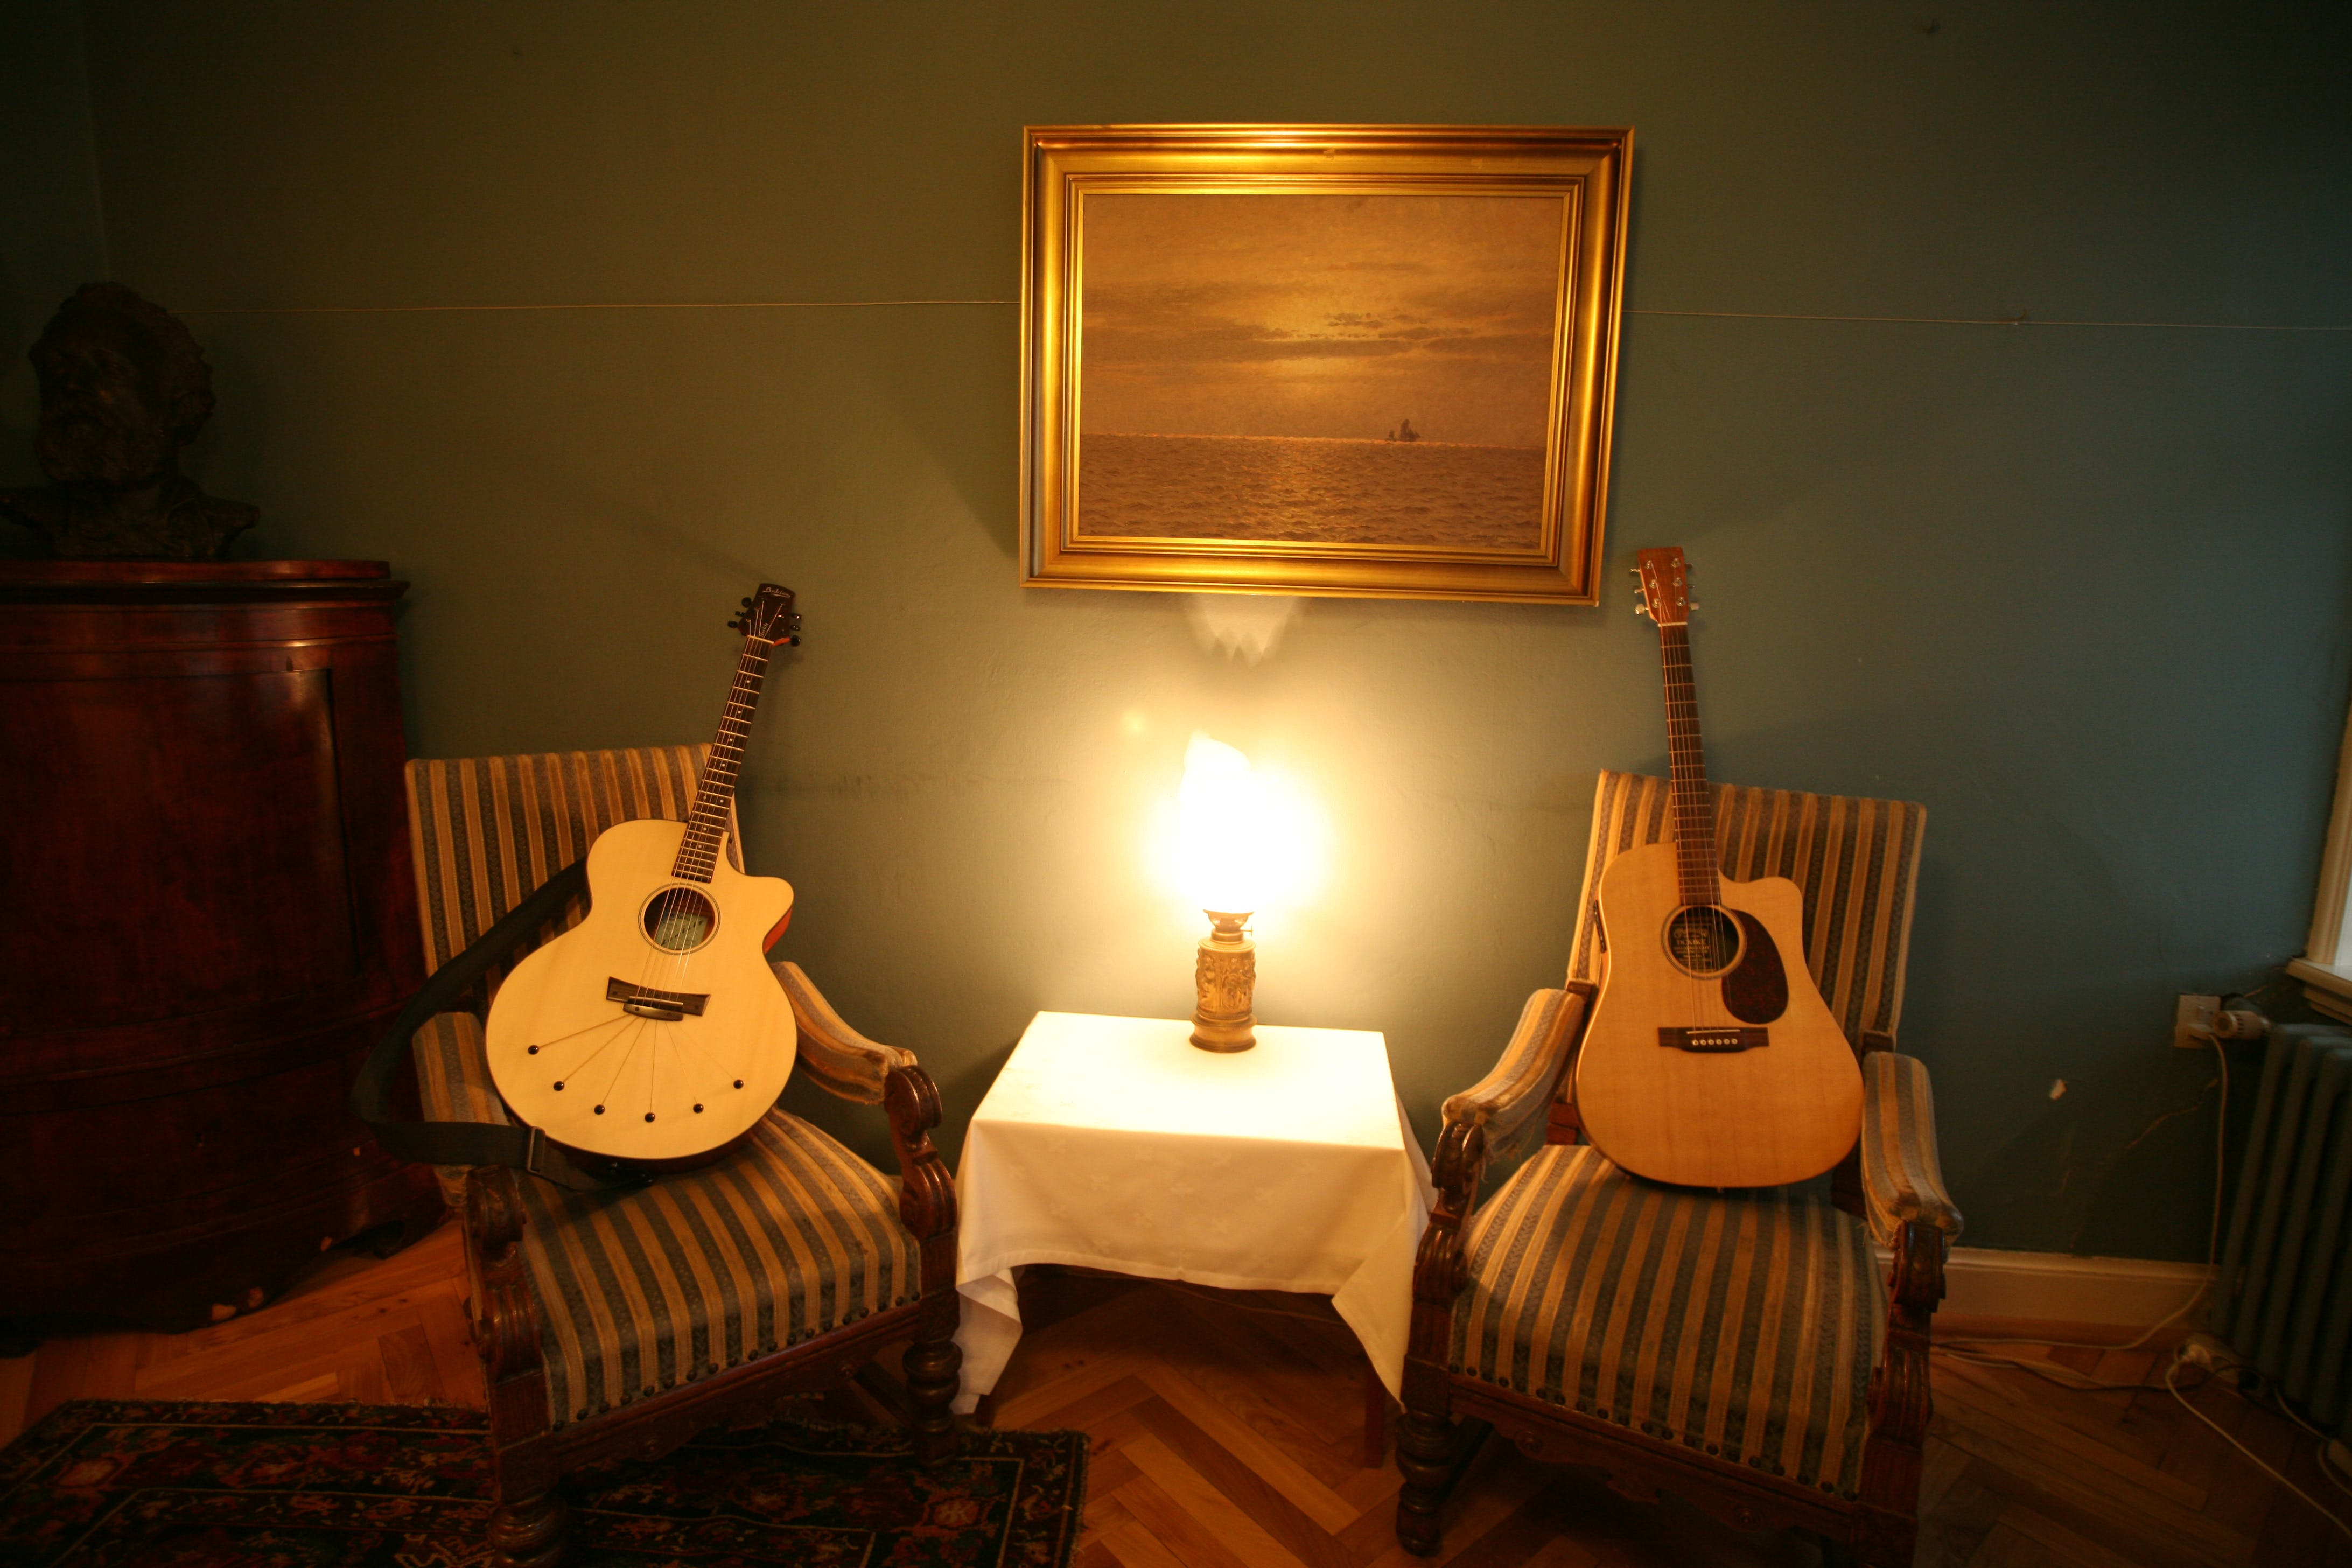 Two Brown Acoustic Guitars on Chairs